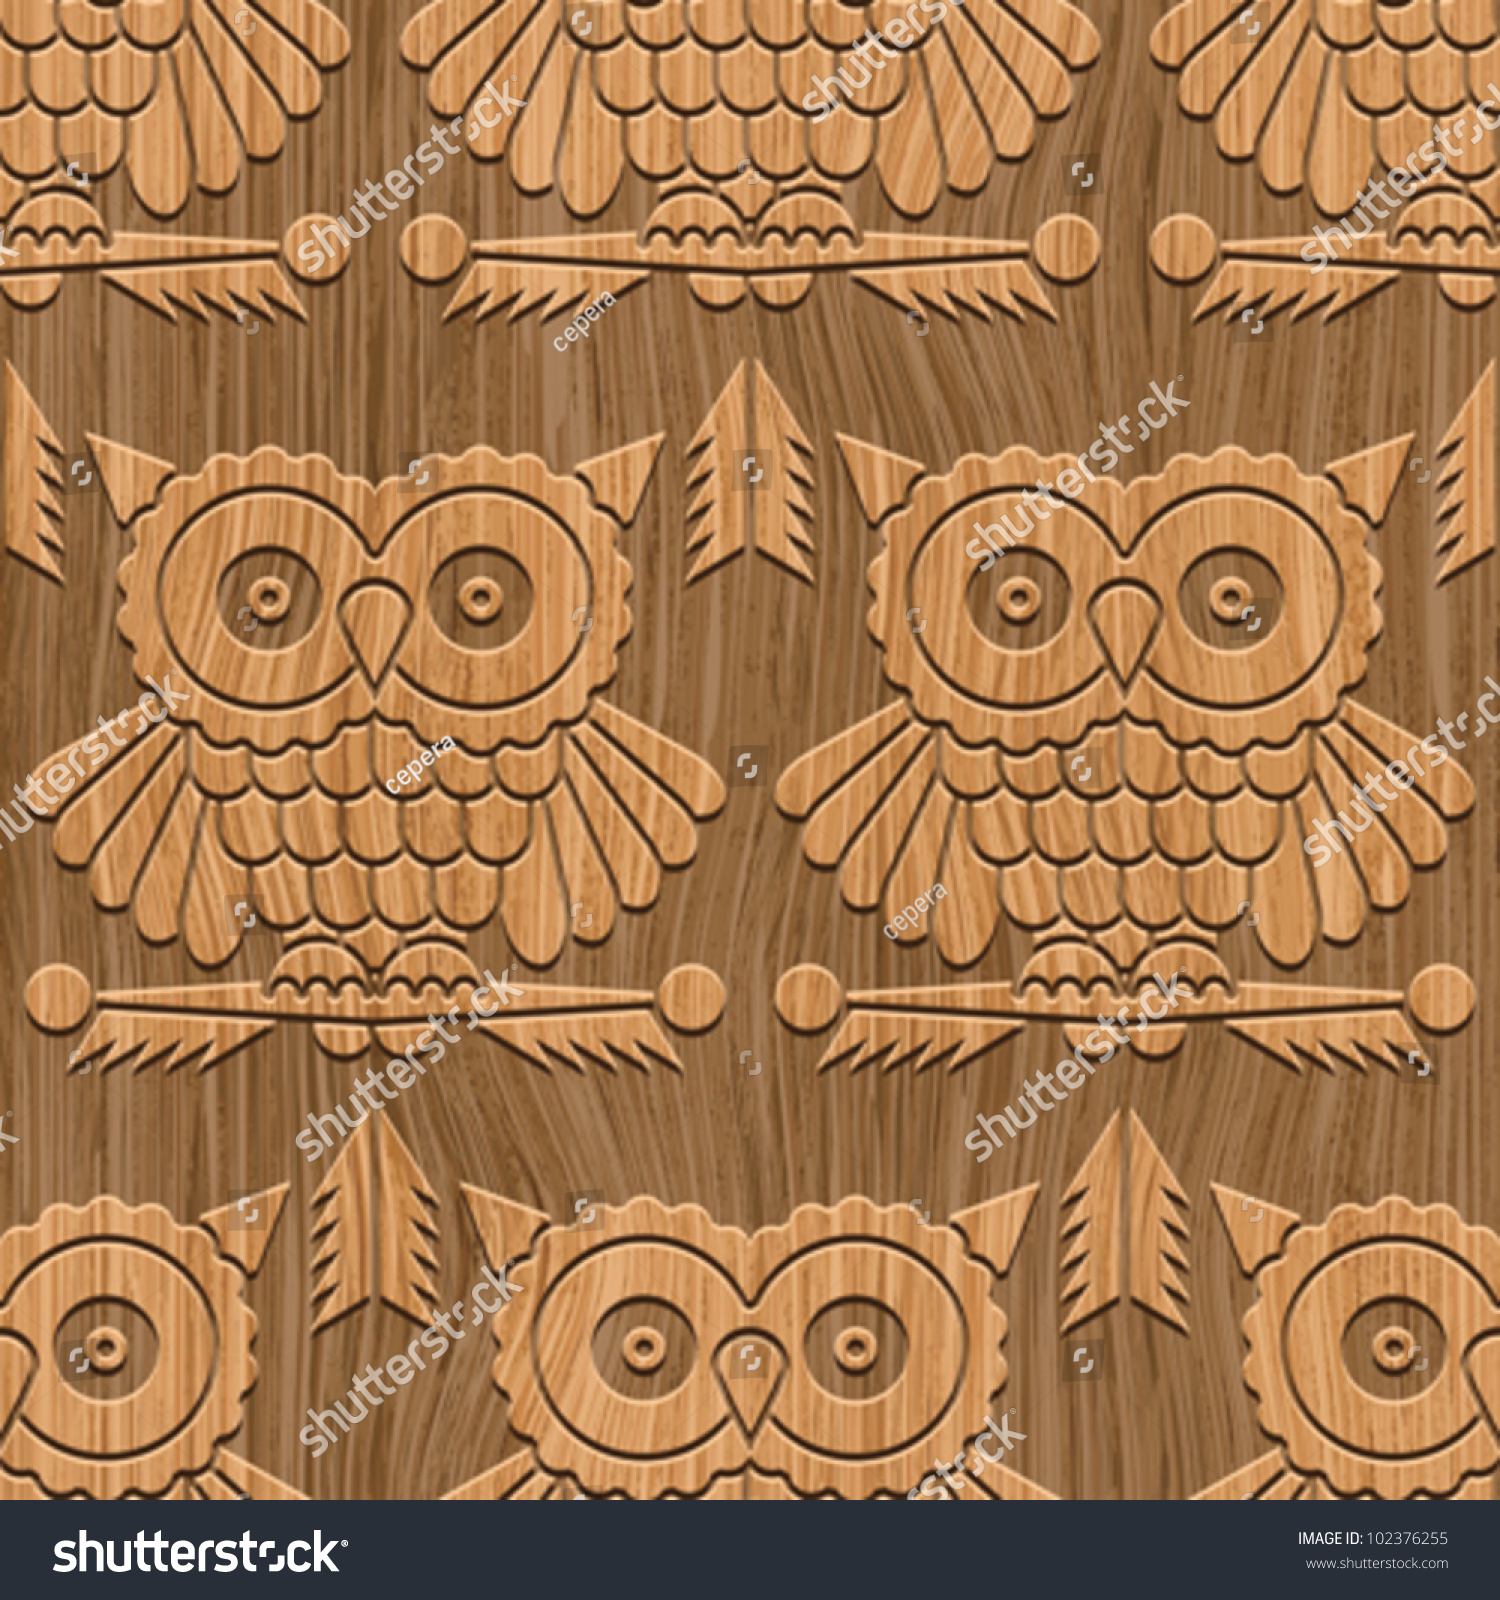 Abstract decorative wooden carving textured owls stock